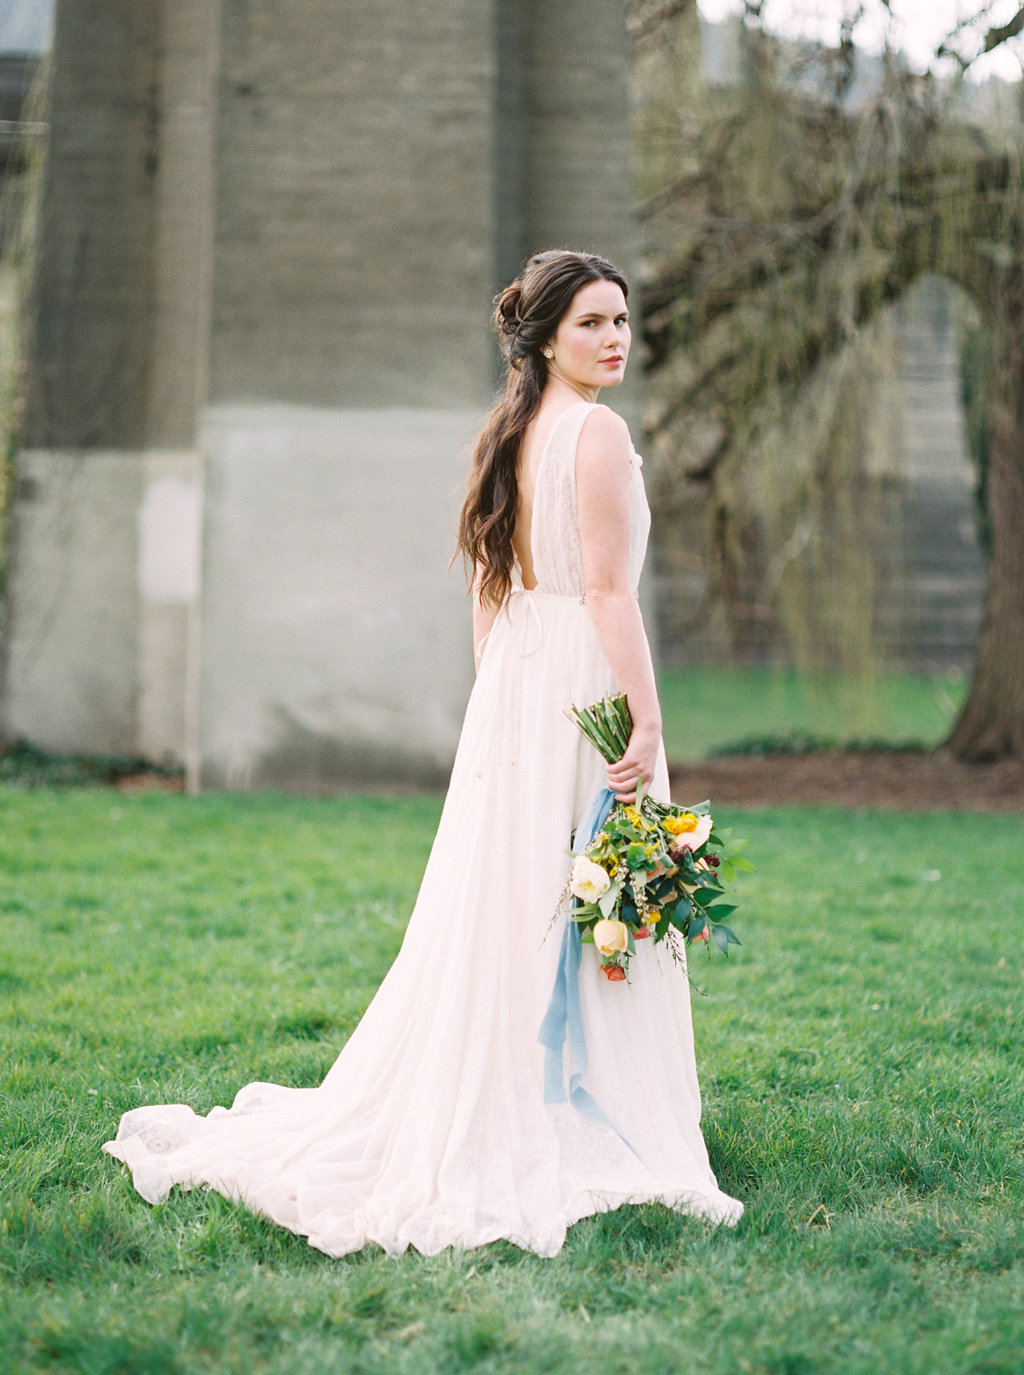 portland wedding photographer, fine art wedding photographer, film wedding photographer, vancouver wedding photographer, oregon wedding photographer, best portland photographer, best wedding photographers, wedding photographer in portland, pdx wedding photographer